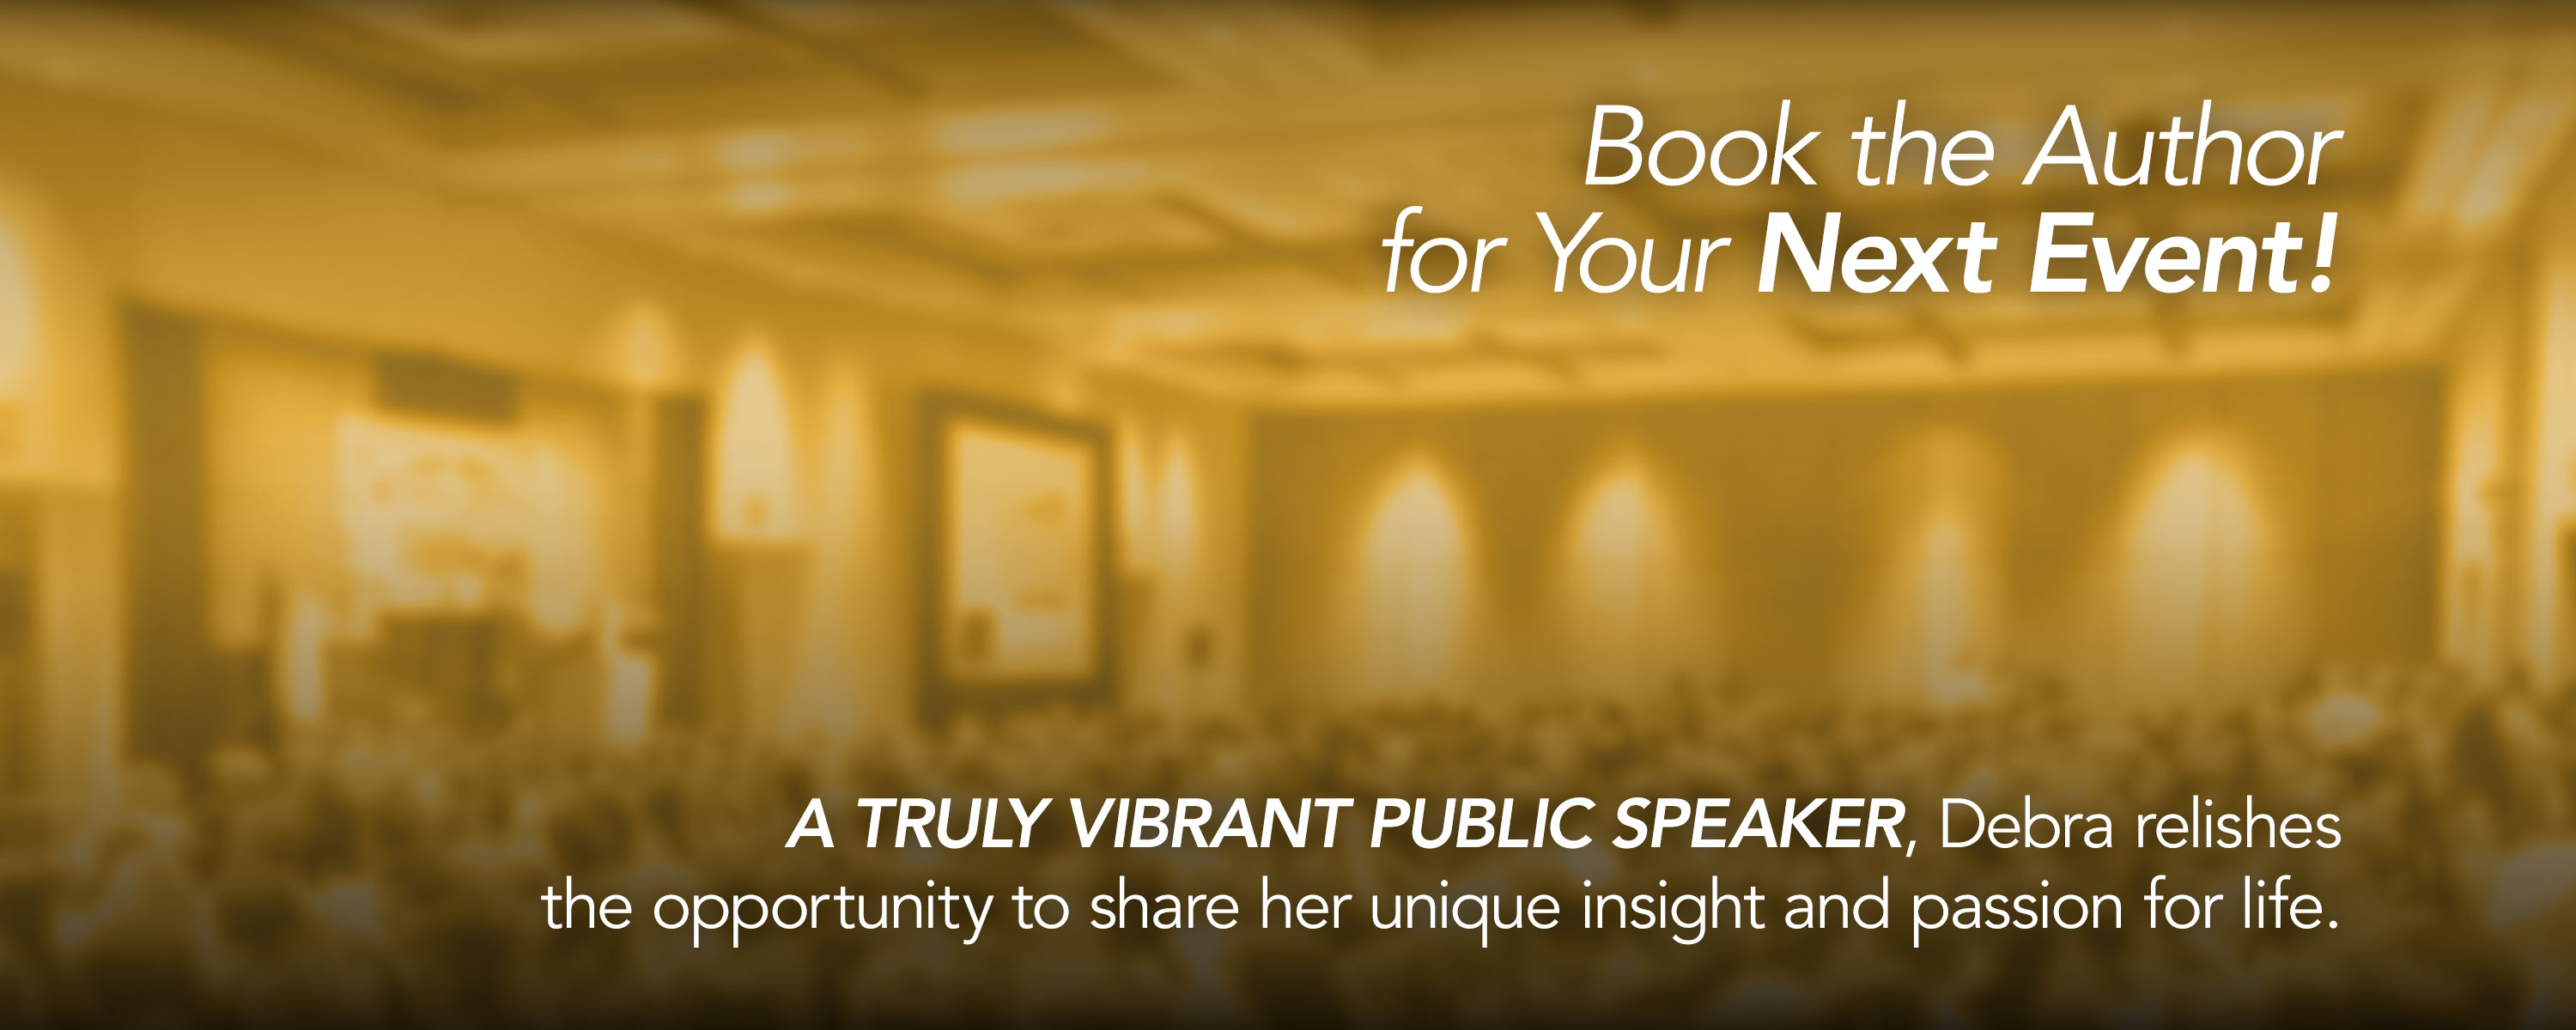 Book Debra as a public speaker for your next event